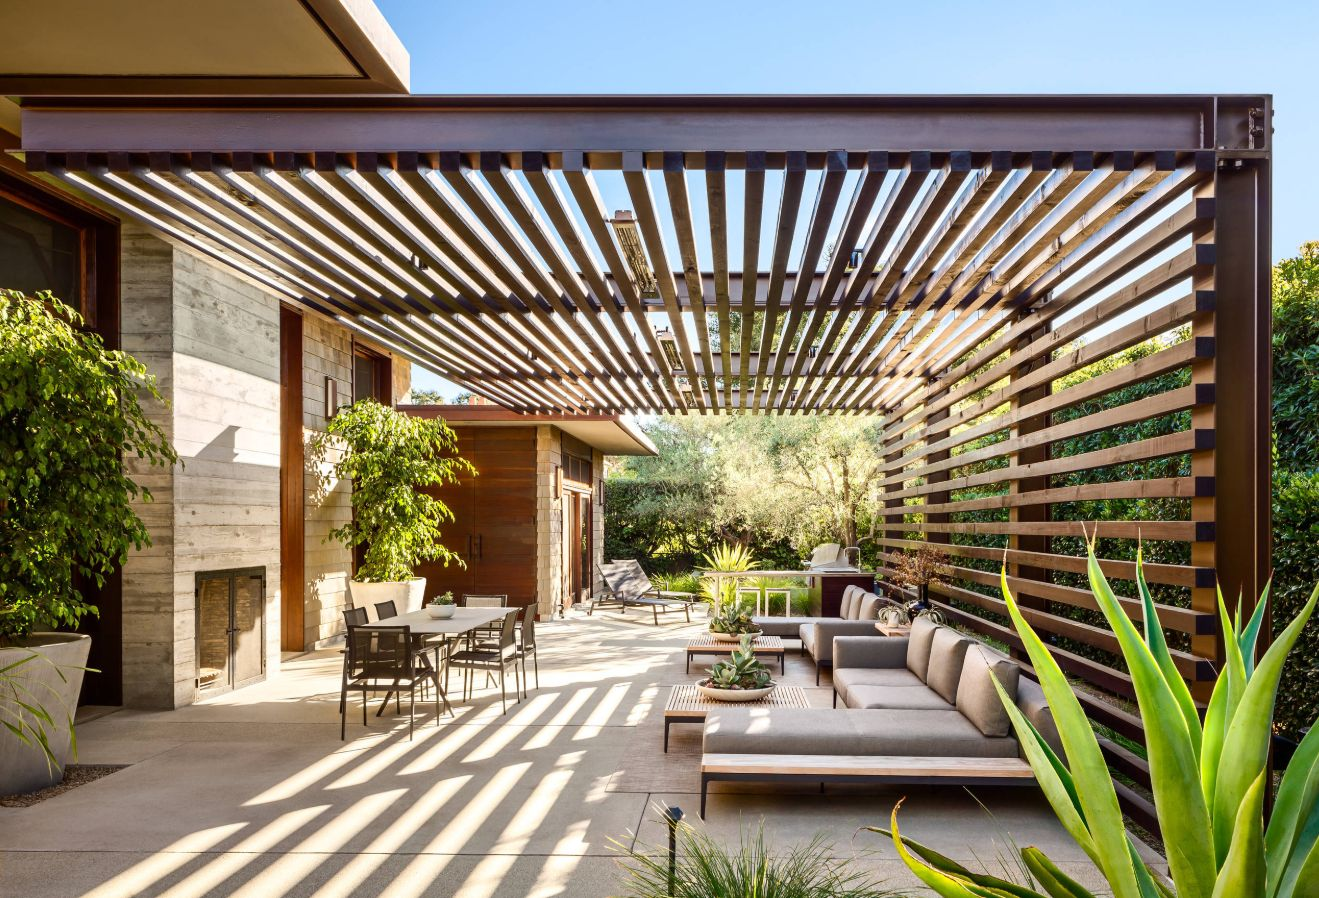 This contemporary patio has plenty of room for entertaining.